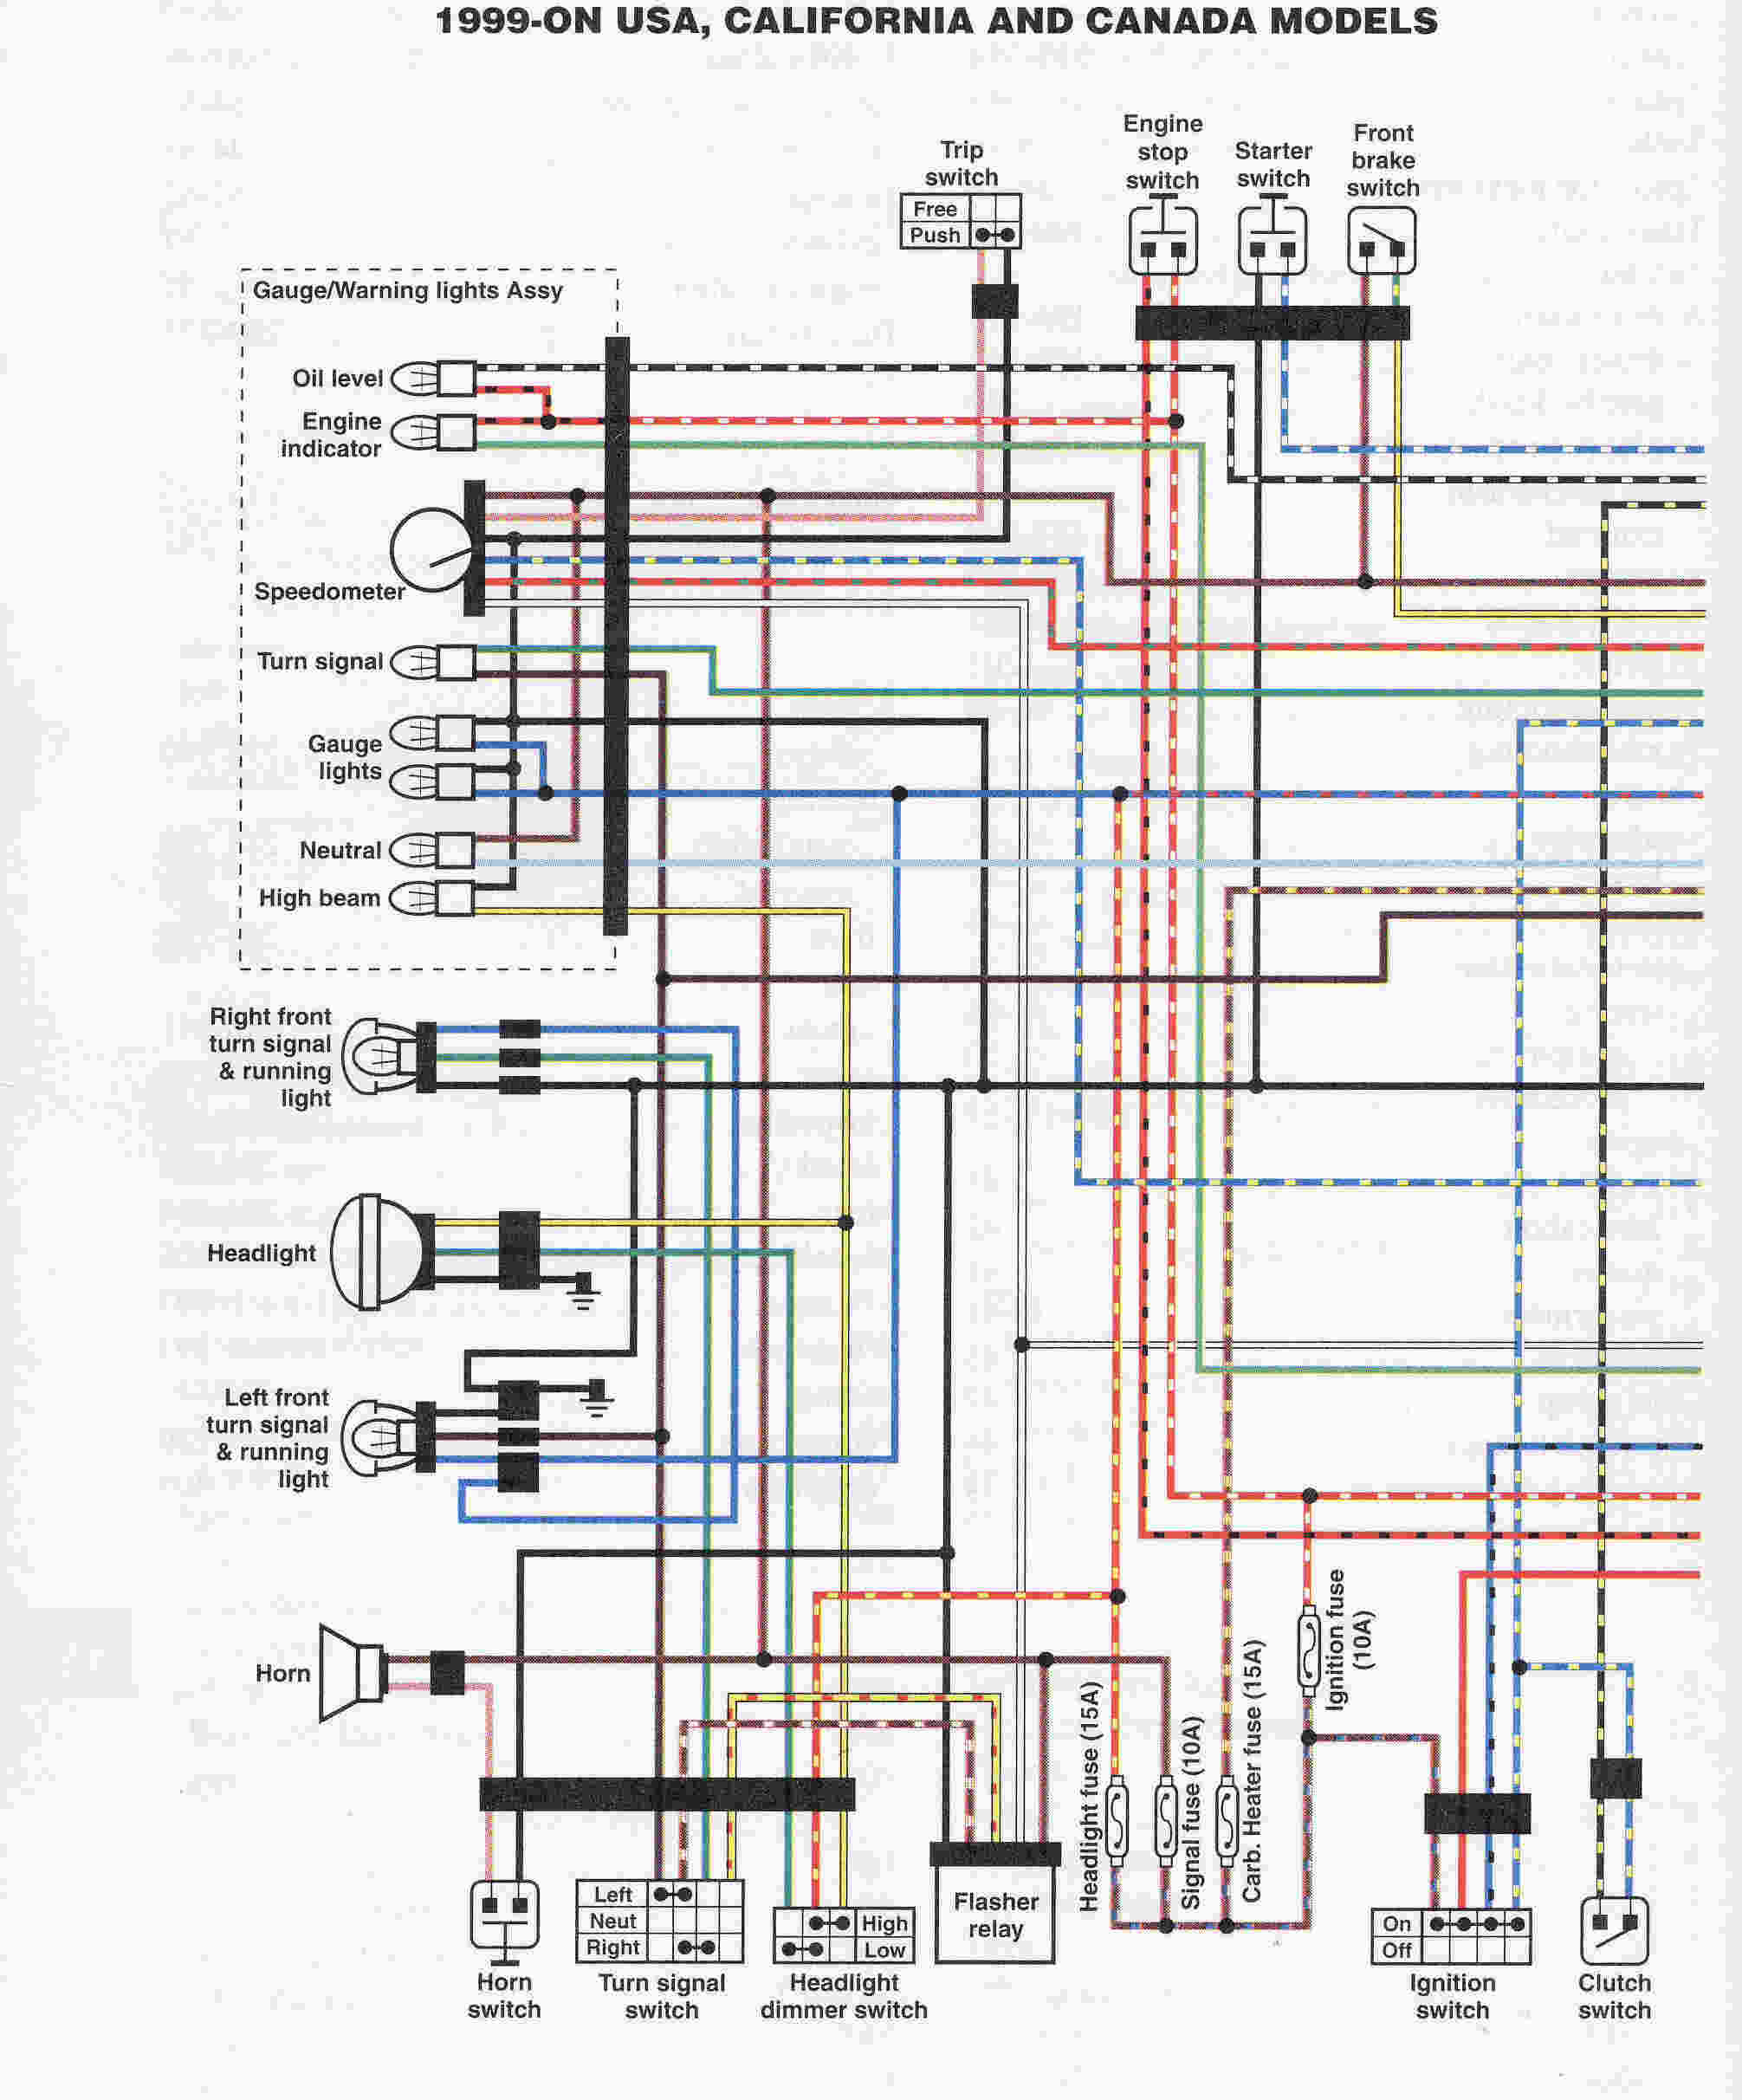 Wiring US 01 yamaha warrior wiring diagram the wiring diagram readingrat net Vulcan 750 Wiring Diagram at webbmarketing.co